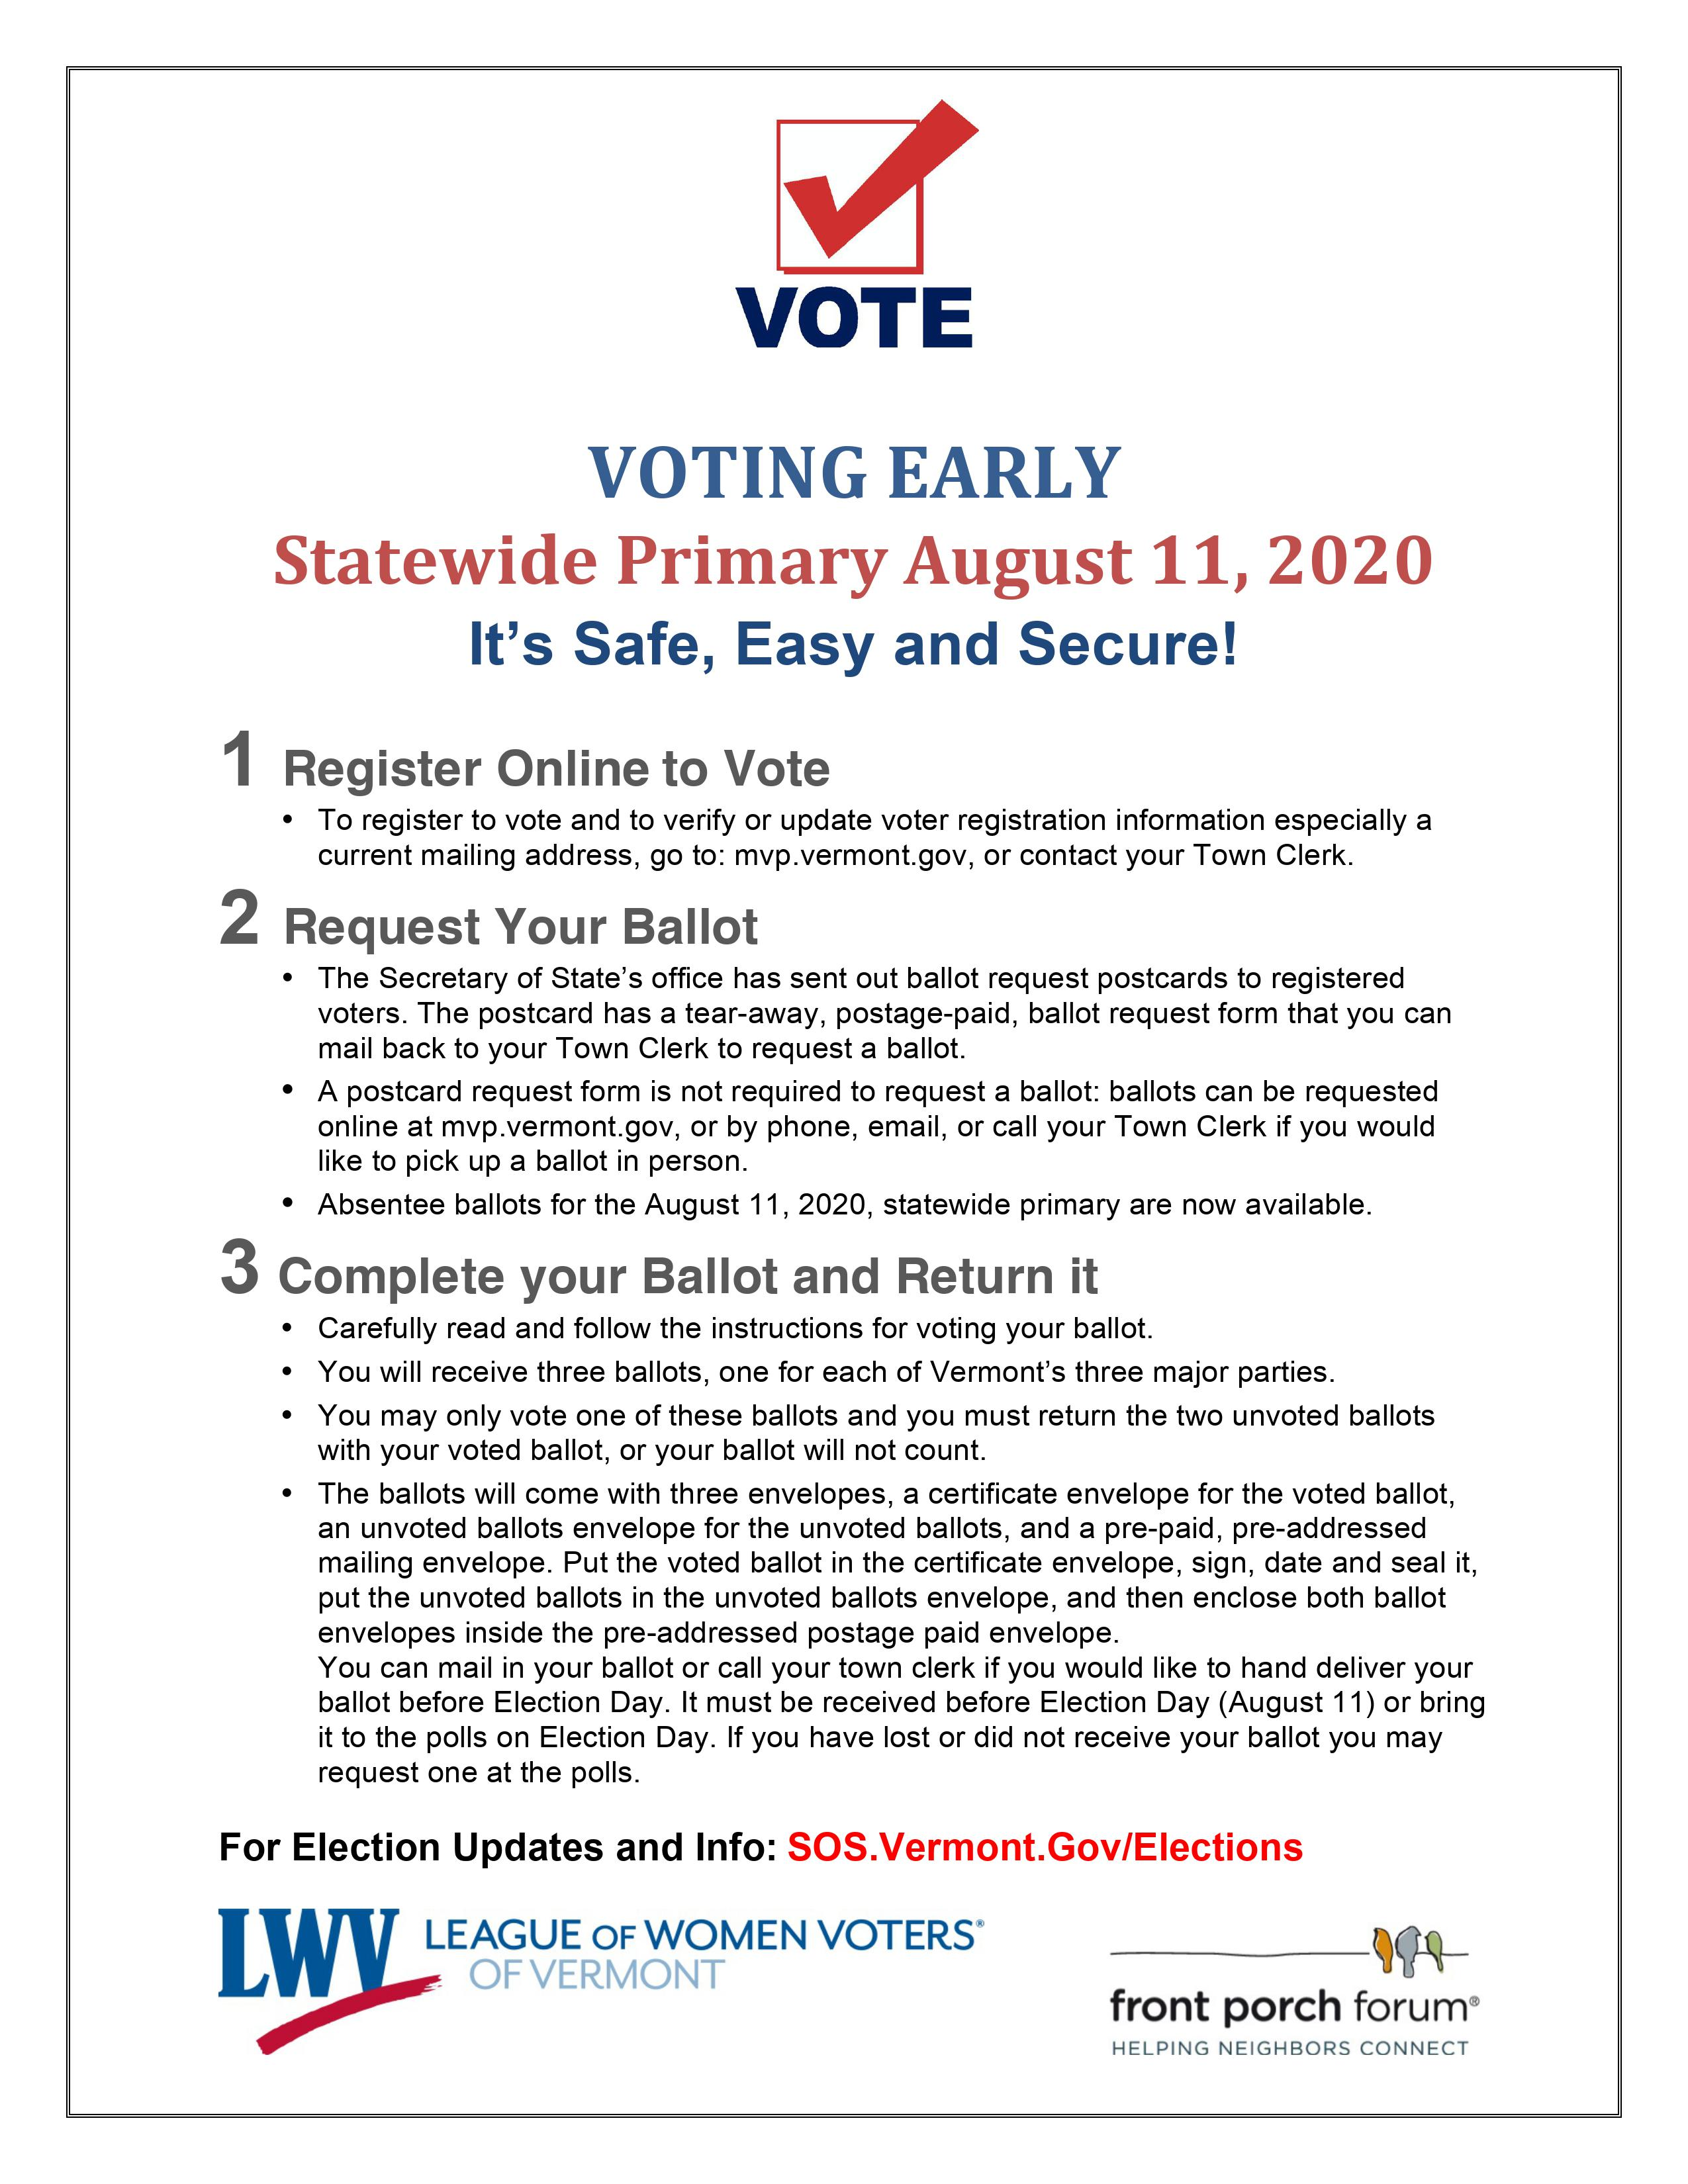 Vermont's Statewide Primary is August 11, 2020